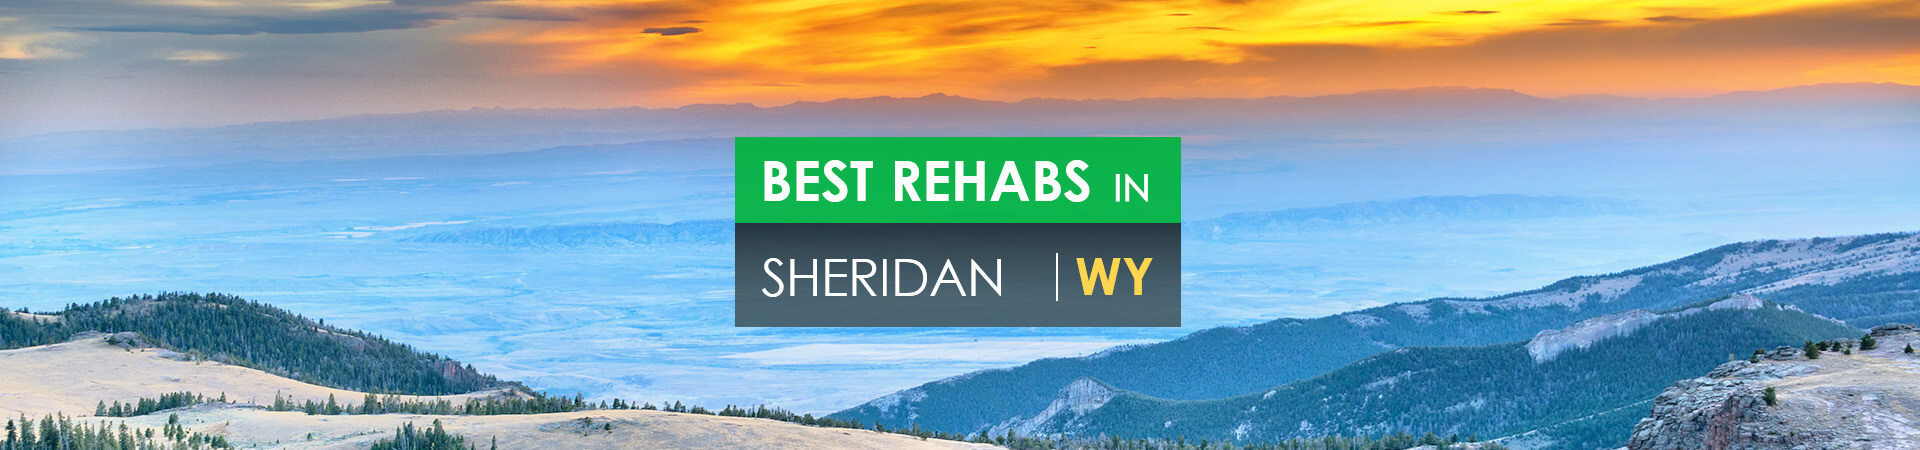 Best rehabs in Sheridan, WY